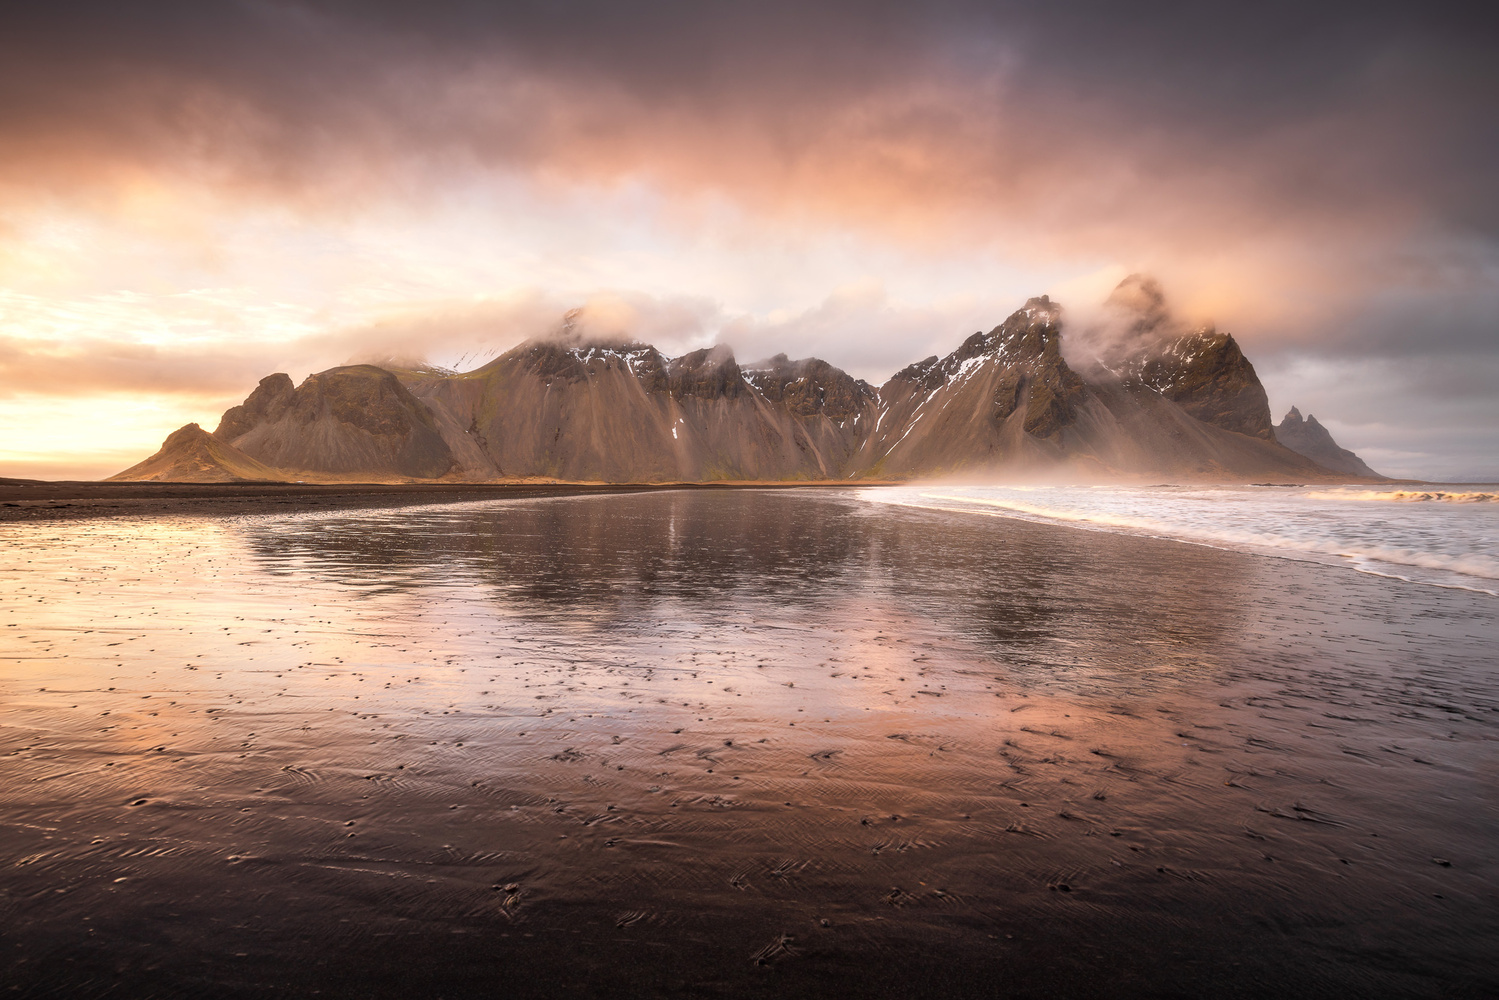 Sunset at Vestrahorn by Mads Peter Iversen